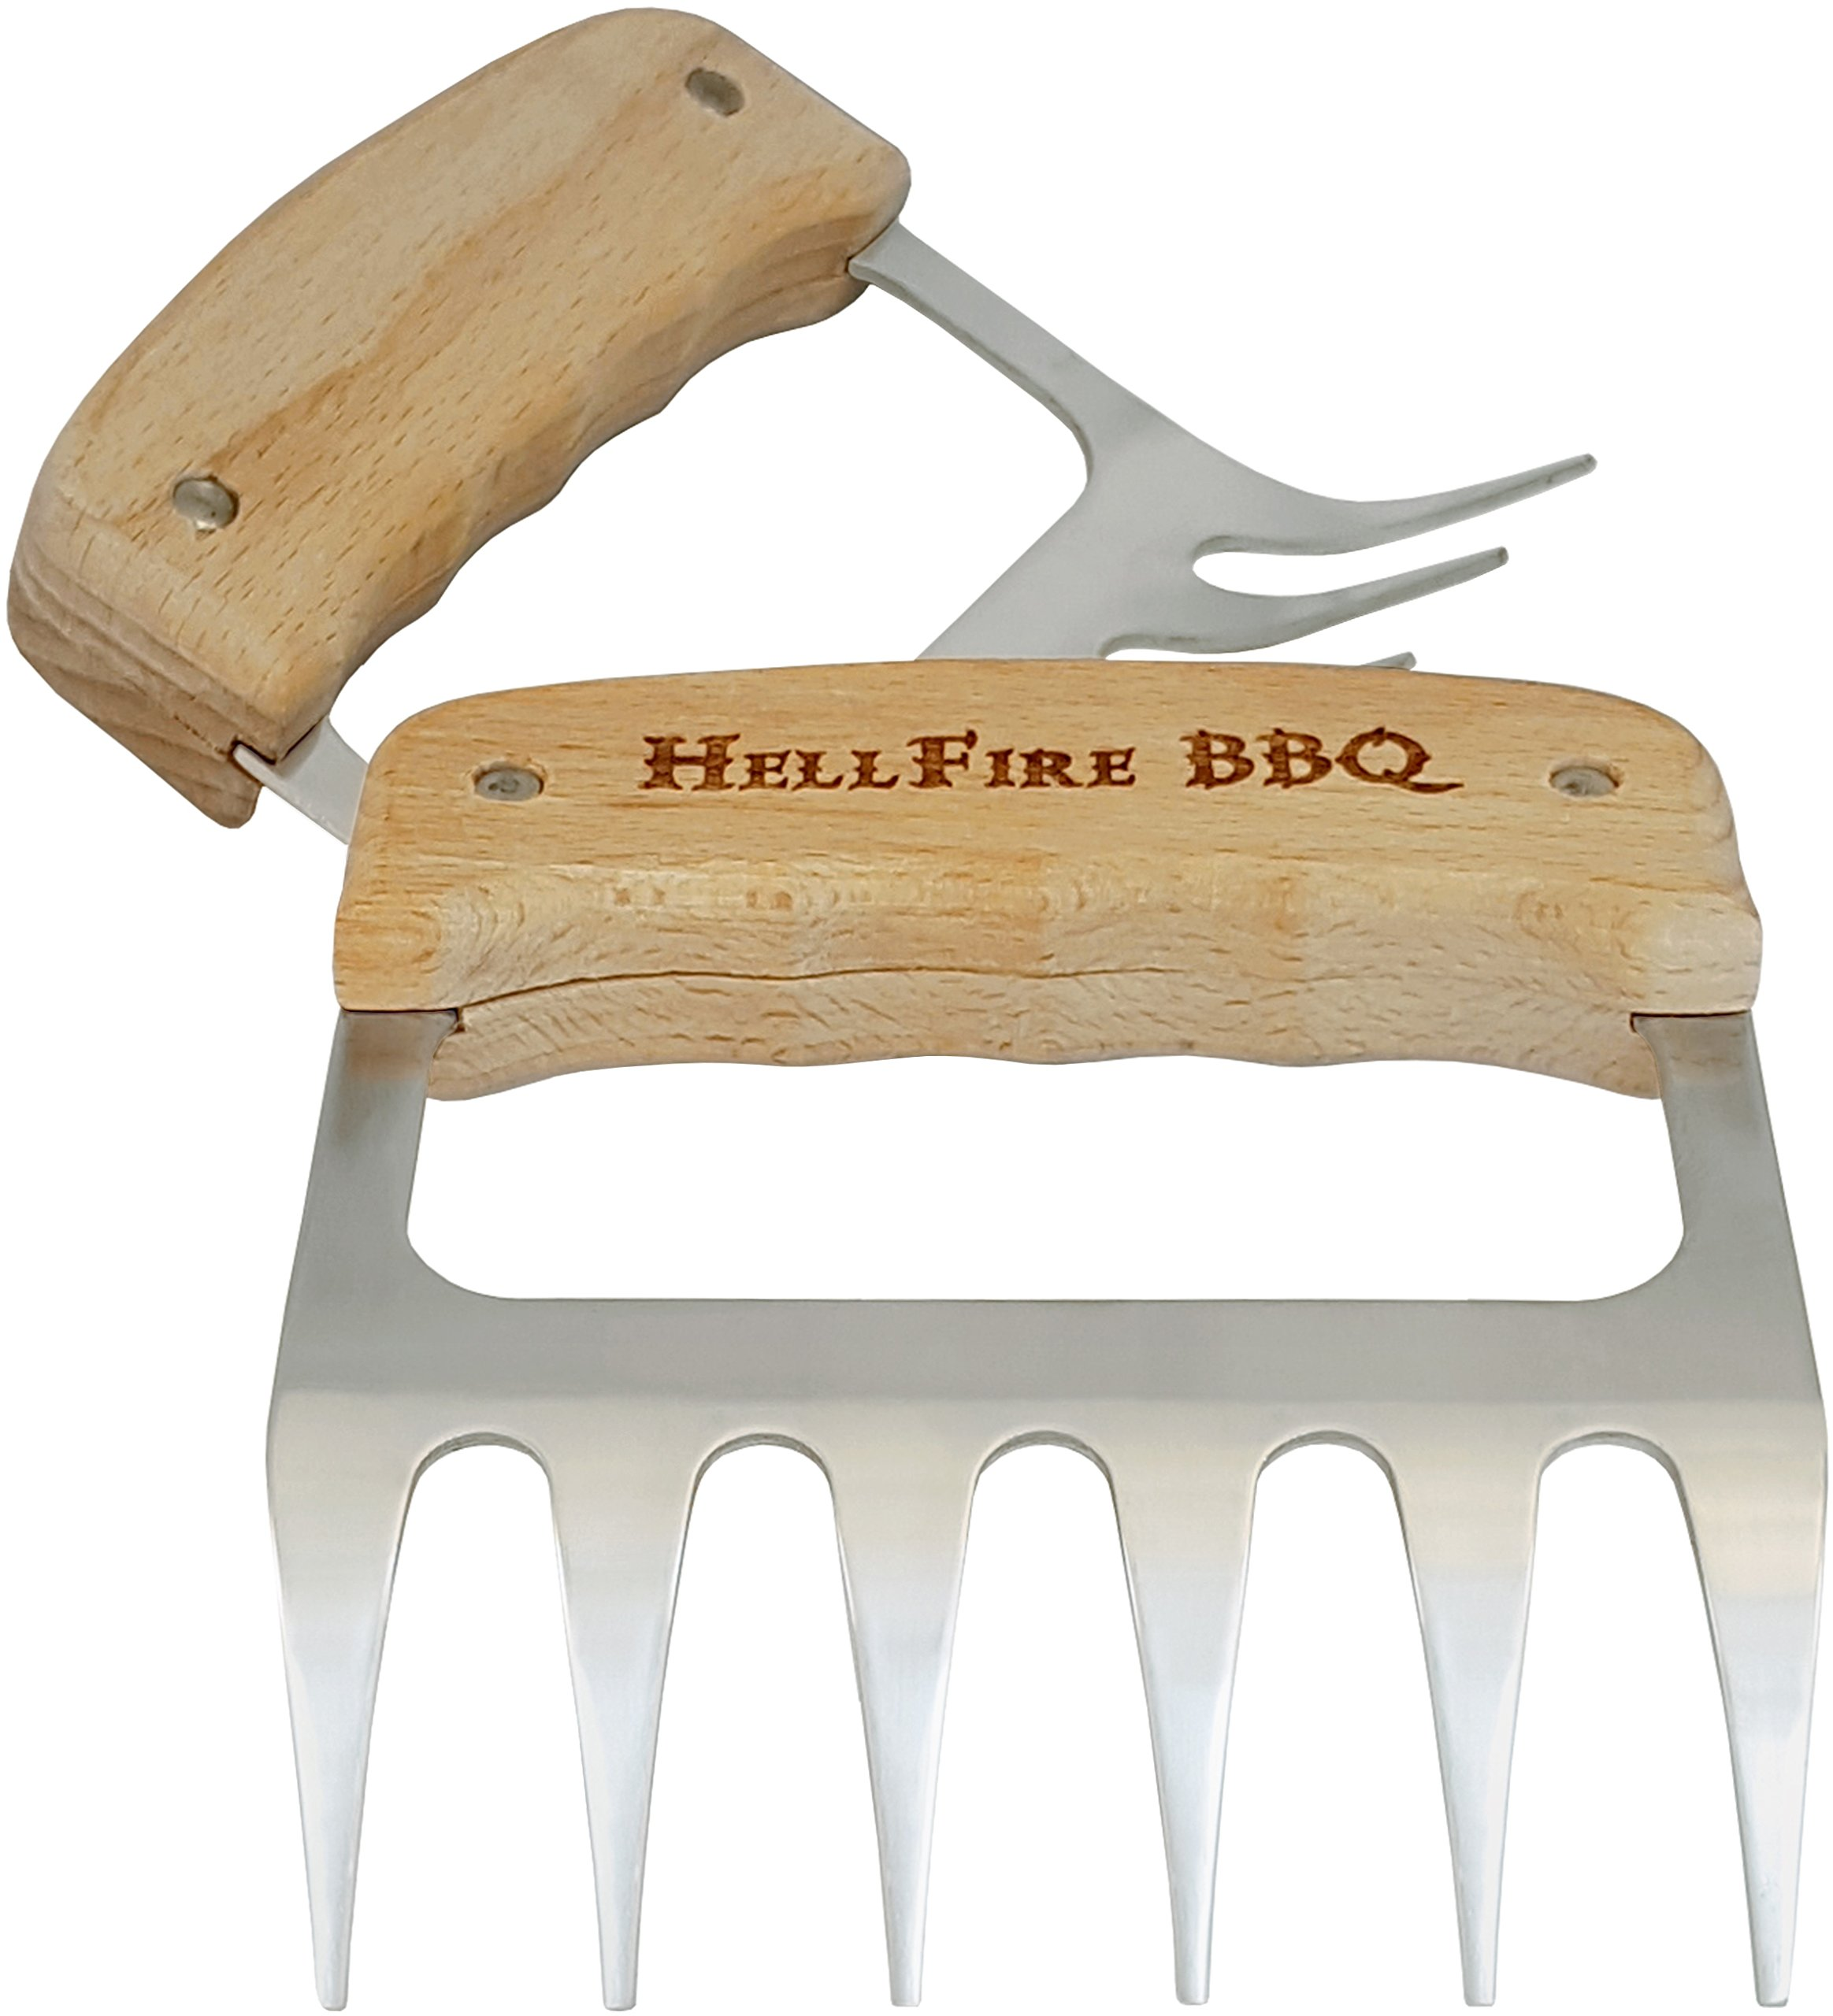 HellFire BBQ Meat Claws - Our Pulled Pork Shredders Feel Like Bear Paws, or Wolverine's Claws Compared to Boring Meat Handlers or Forks - Heat Resistant Stainless Steel Metal - Wooden Handles